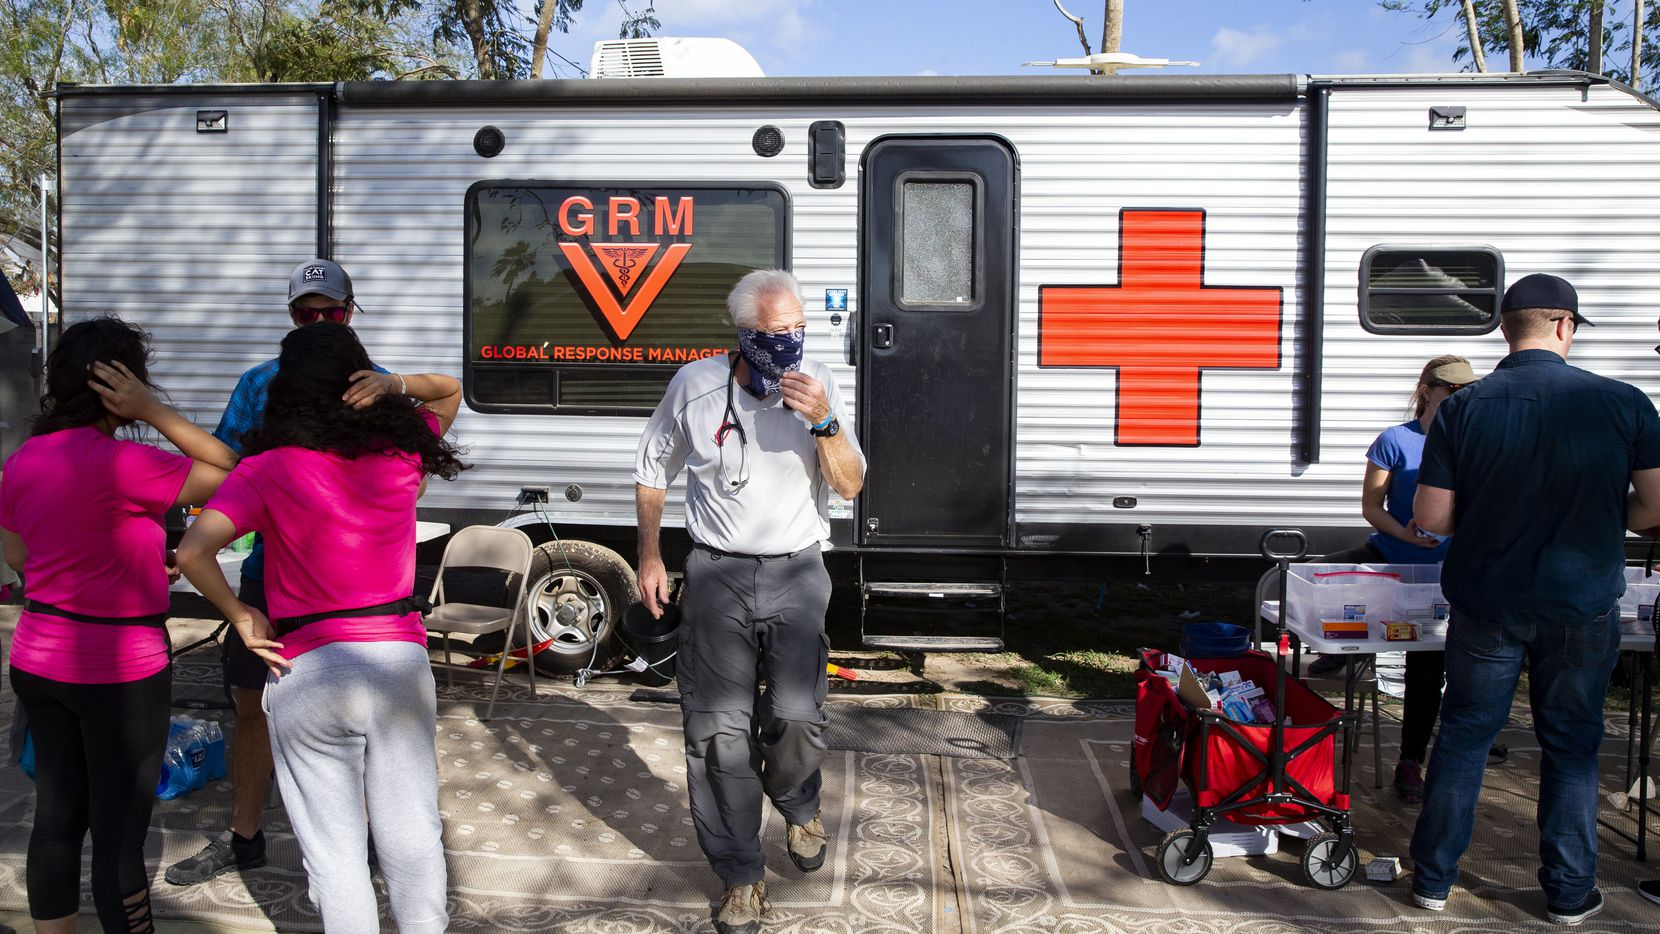 Volunteer doctors and other medical professionals set up outside the Global Response Management trailer to provide health services at the temporary camp in Matamoros, Mexico, on Sunday, Dec. 15, 2019.